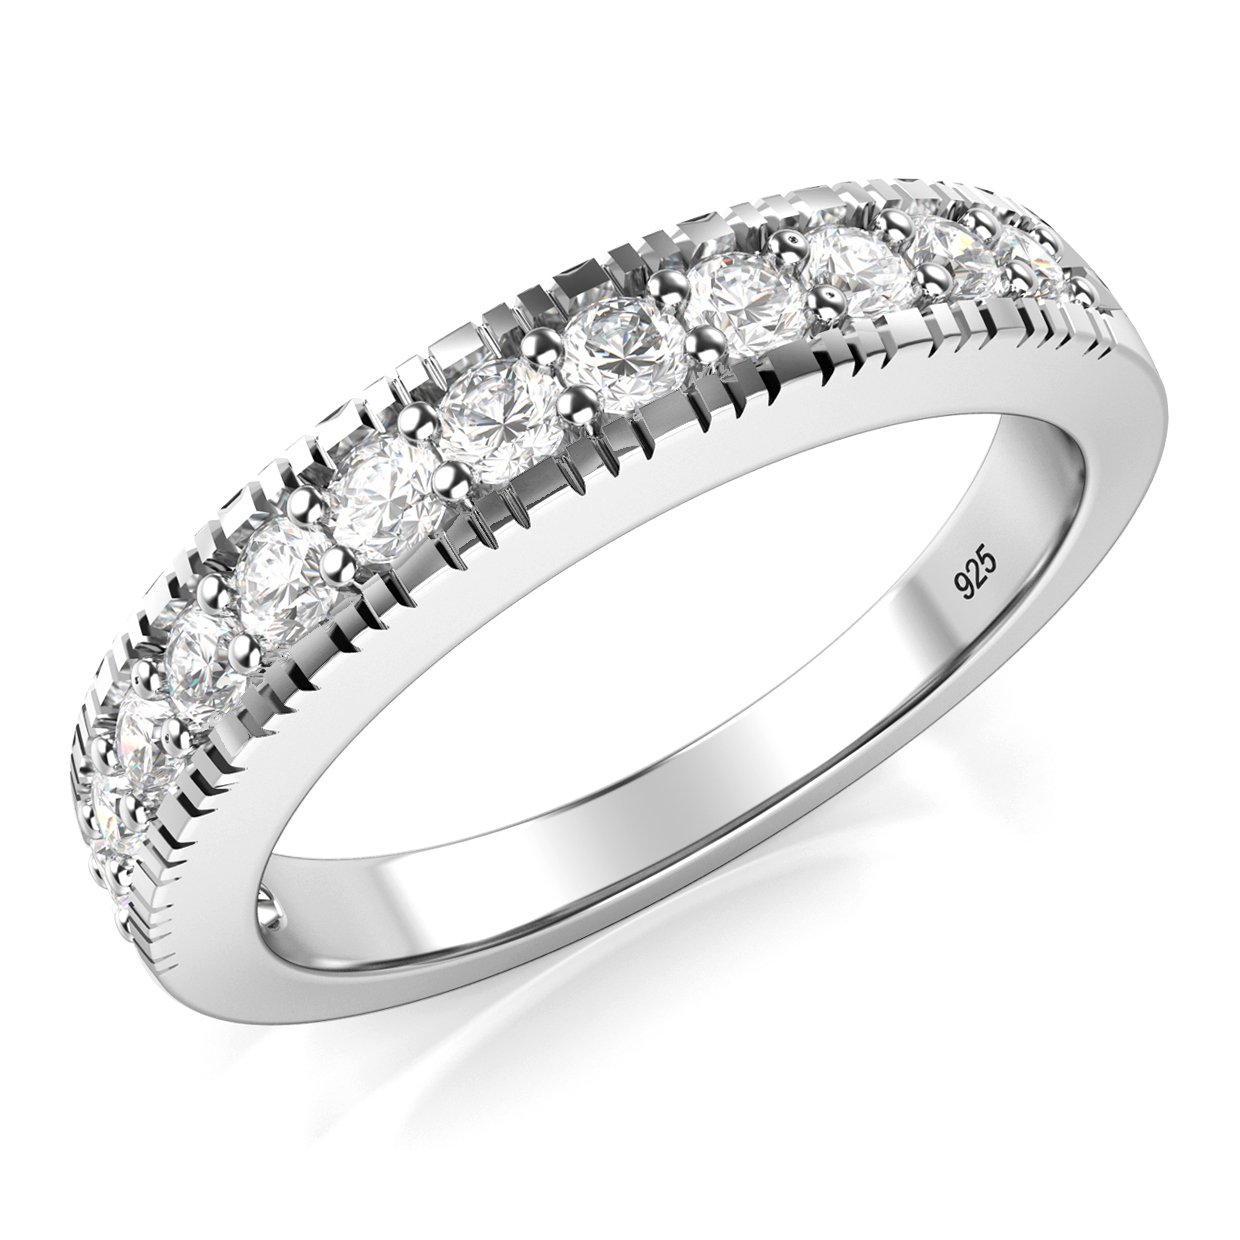 Metal Factory Sz 7 Sterling Silver 925 CZ Cubic Zirconia Wedding Band Ring